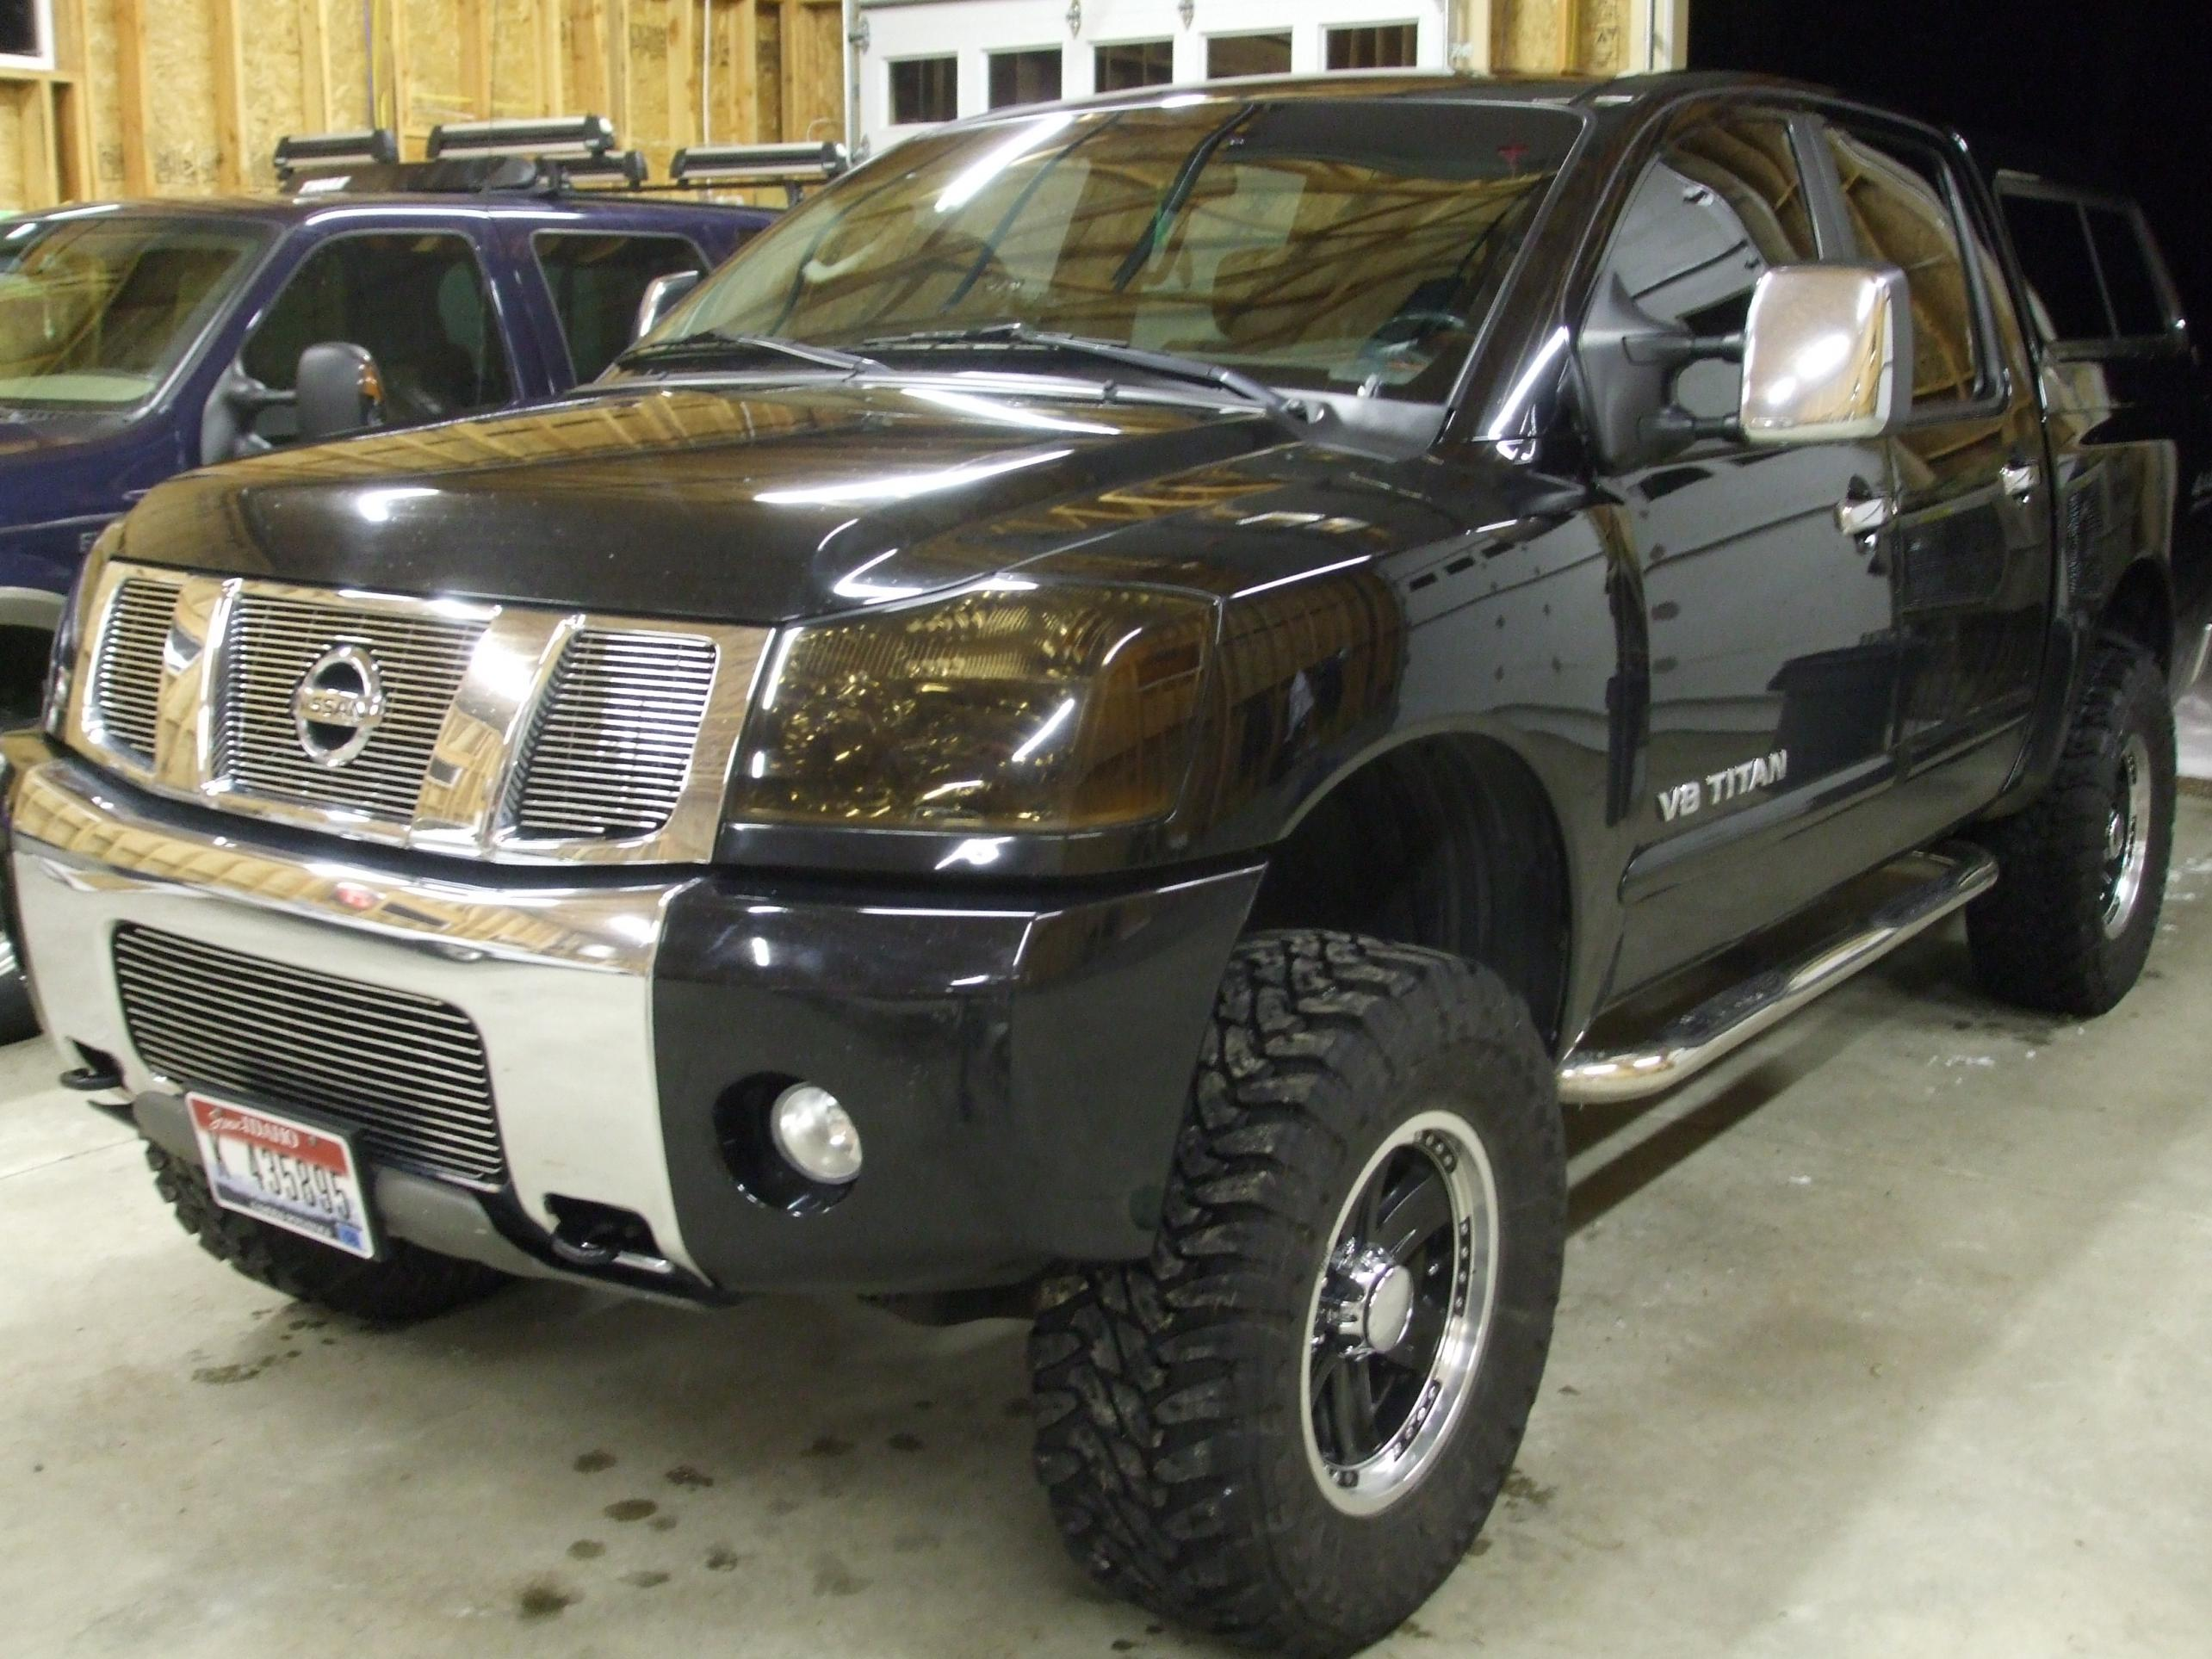 Nissan Titan 2005 photo - 3